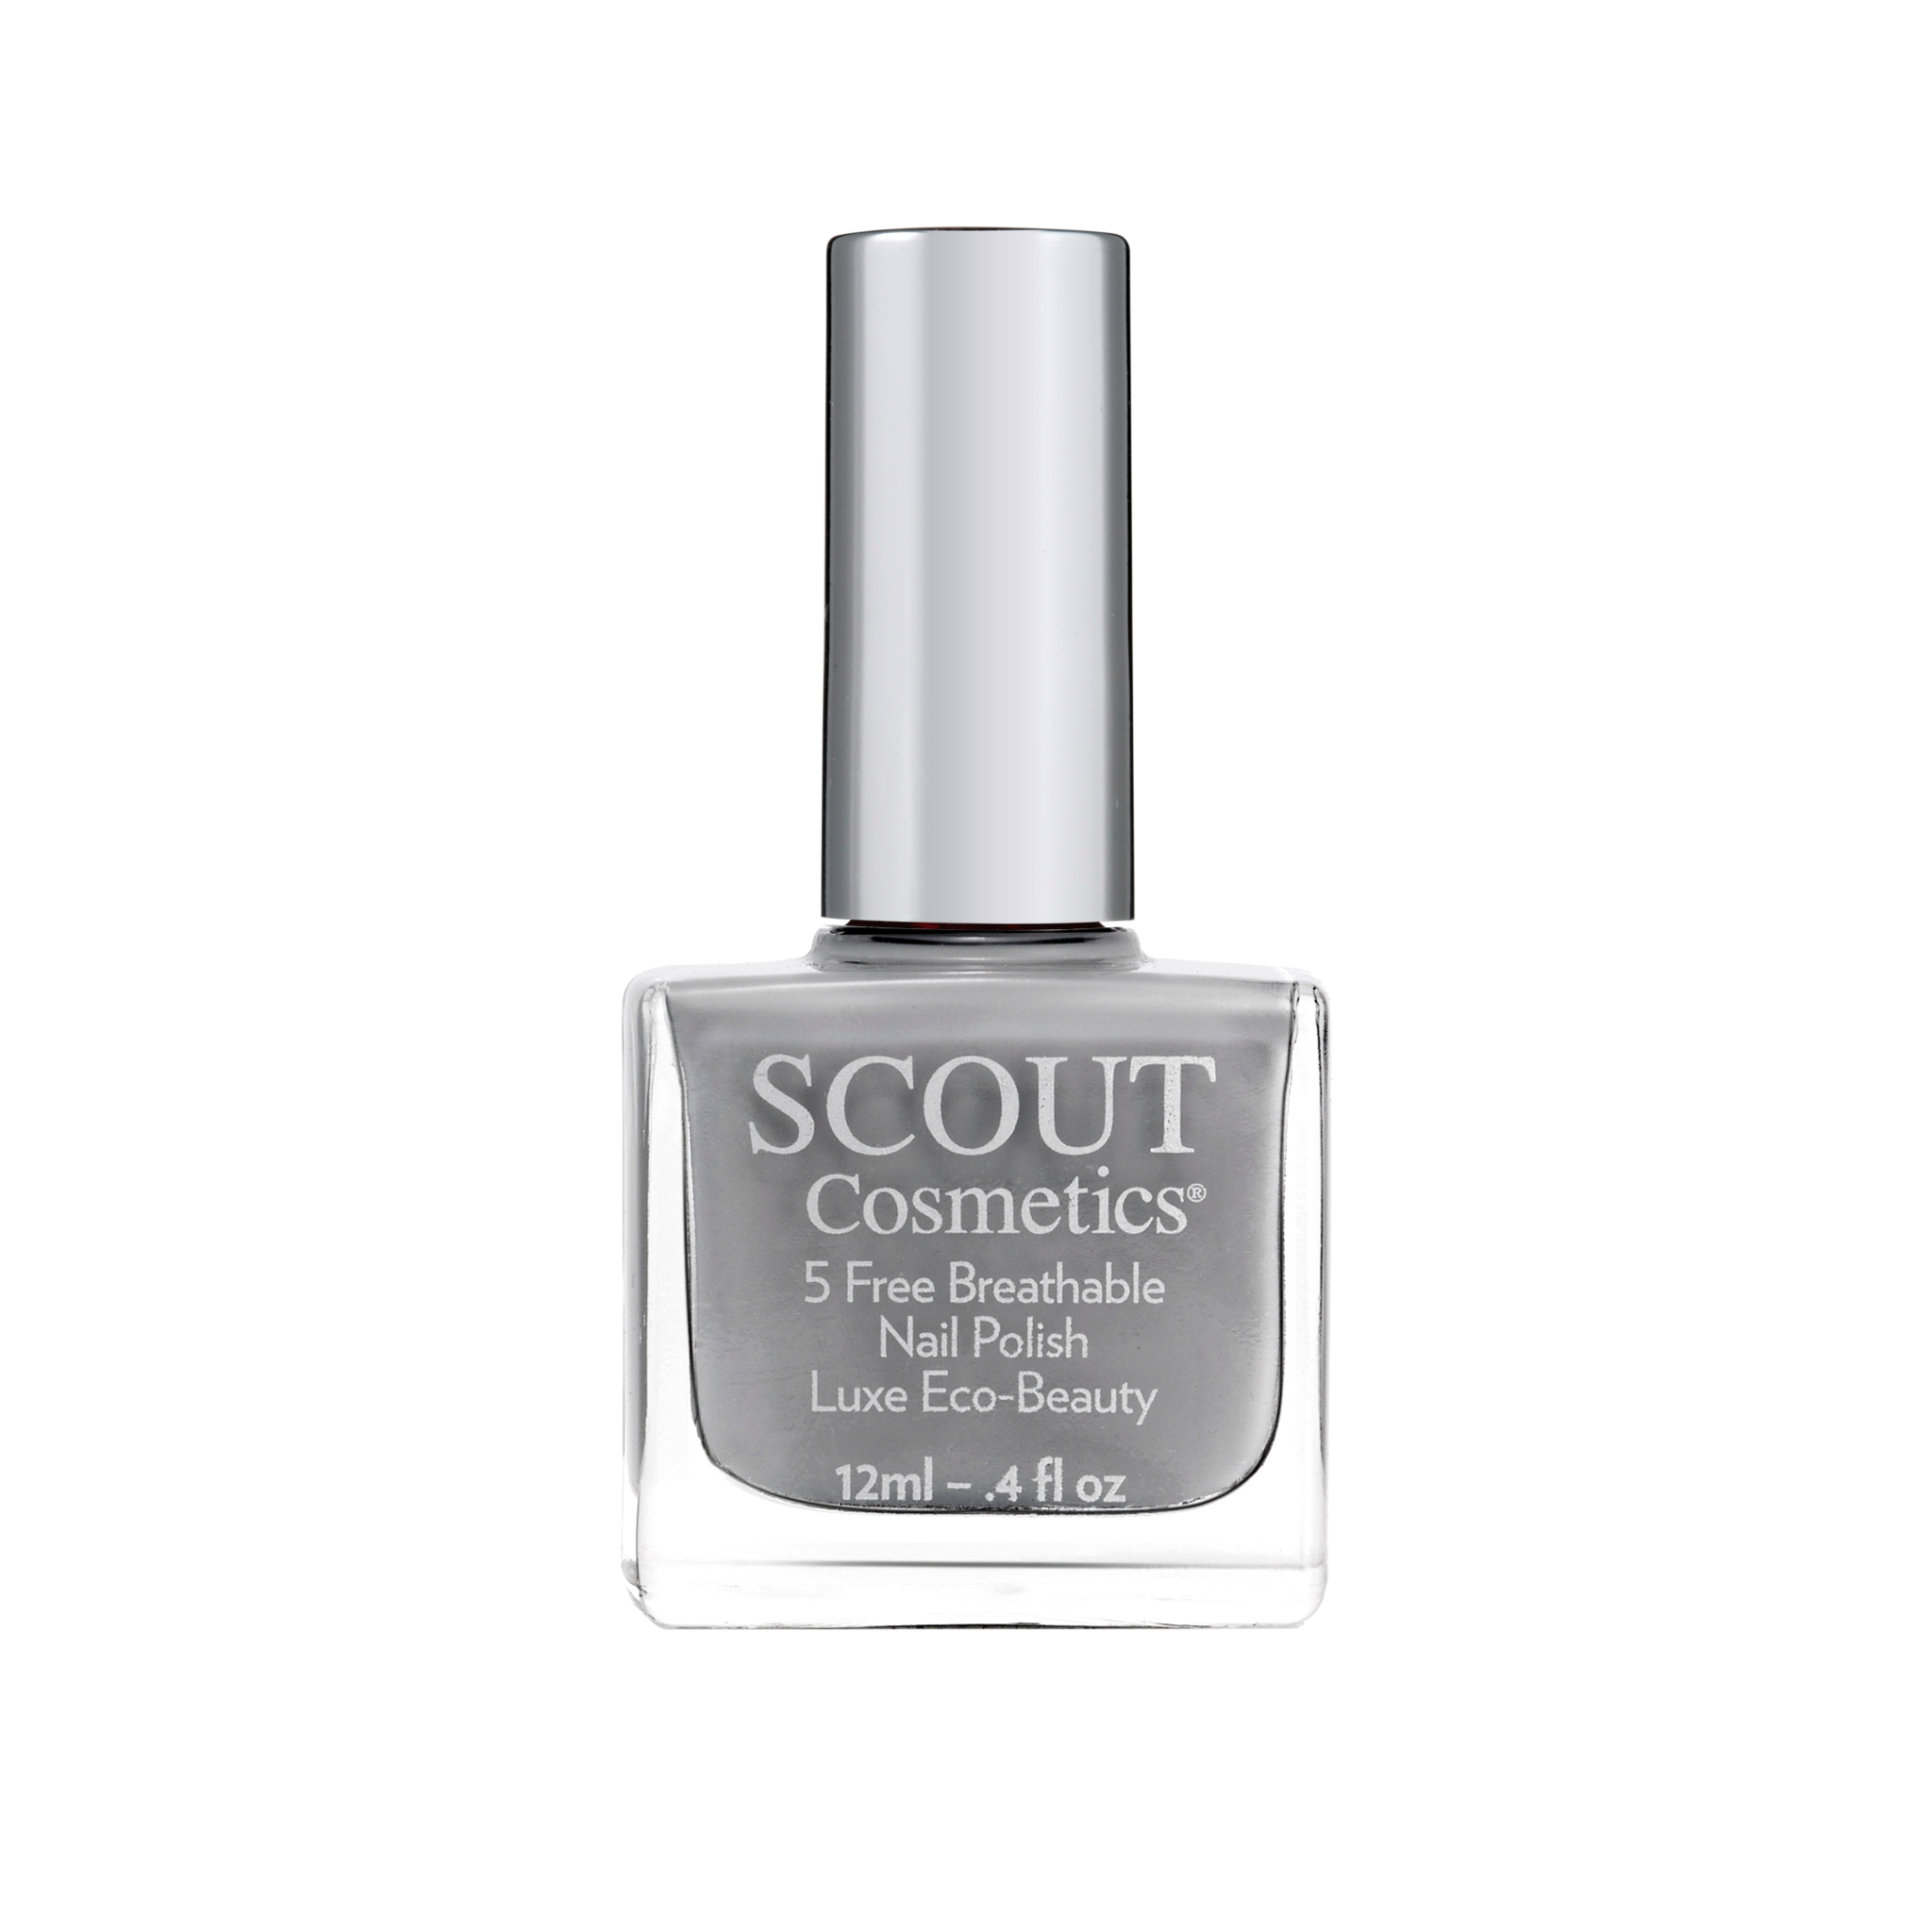 SCOUT Cosmetics Nail Polish - Look at Me